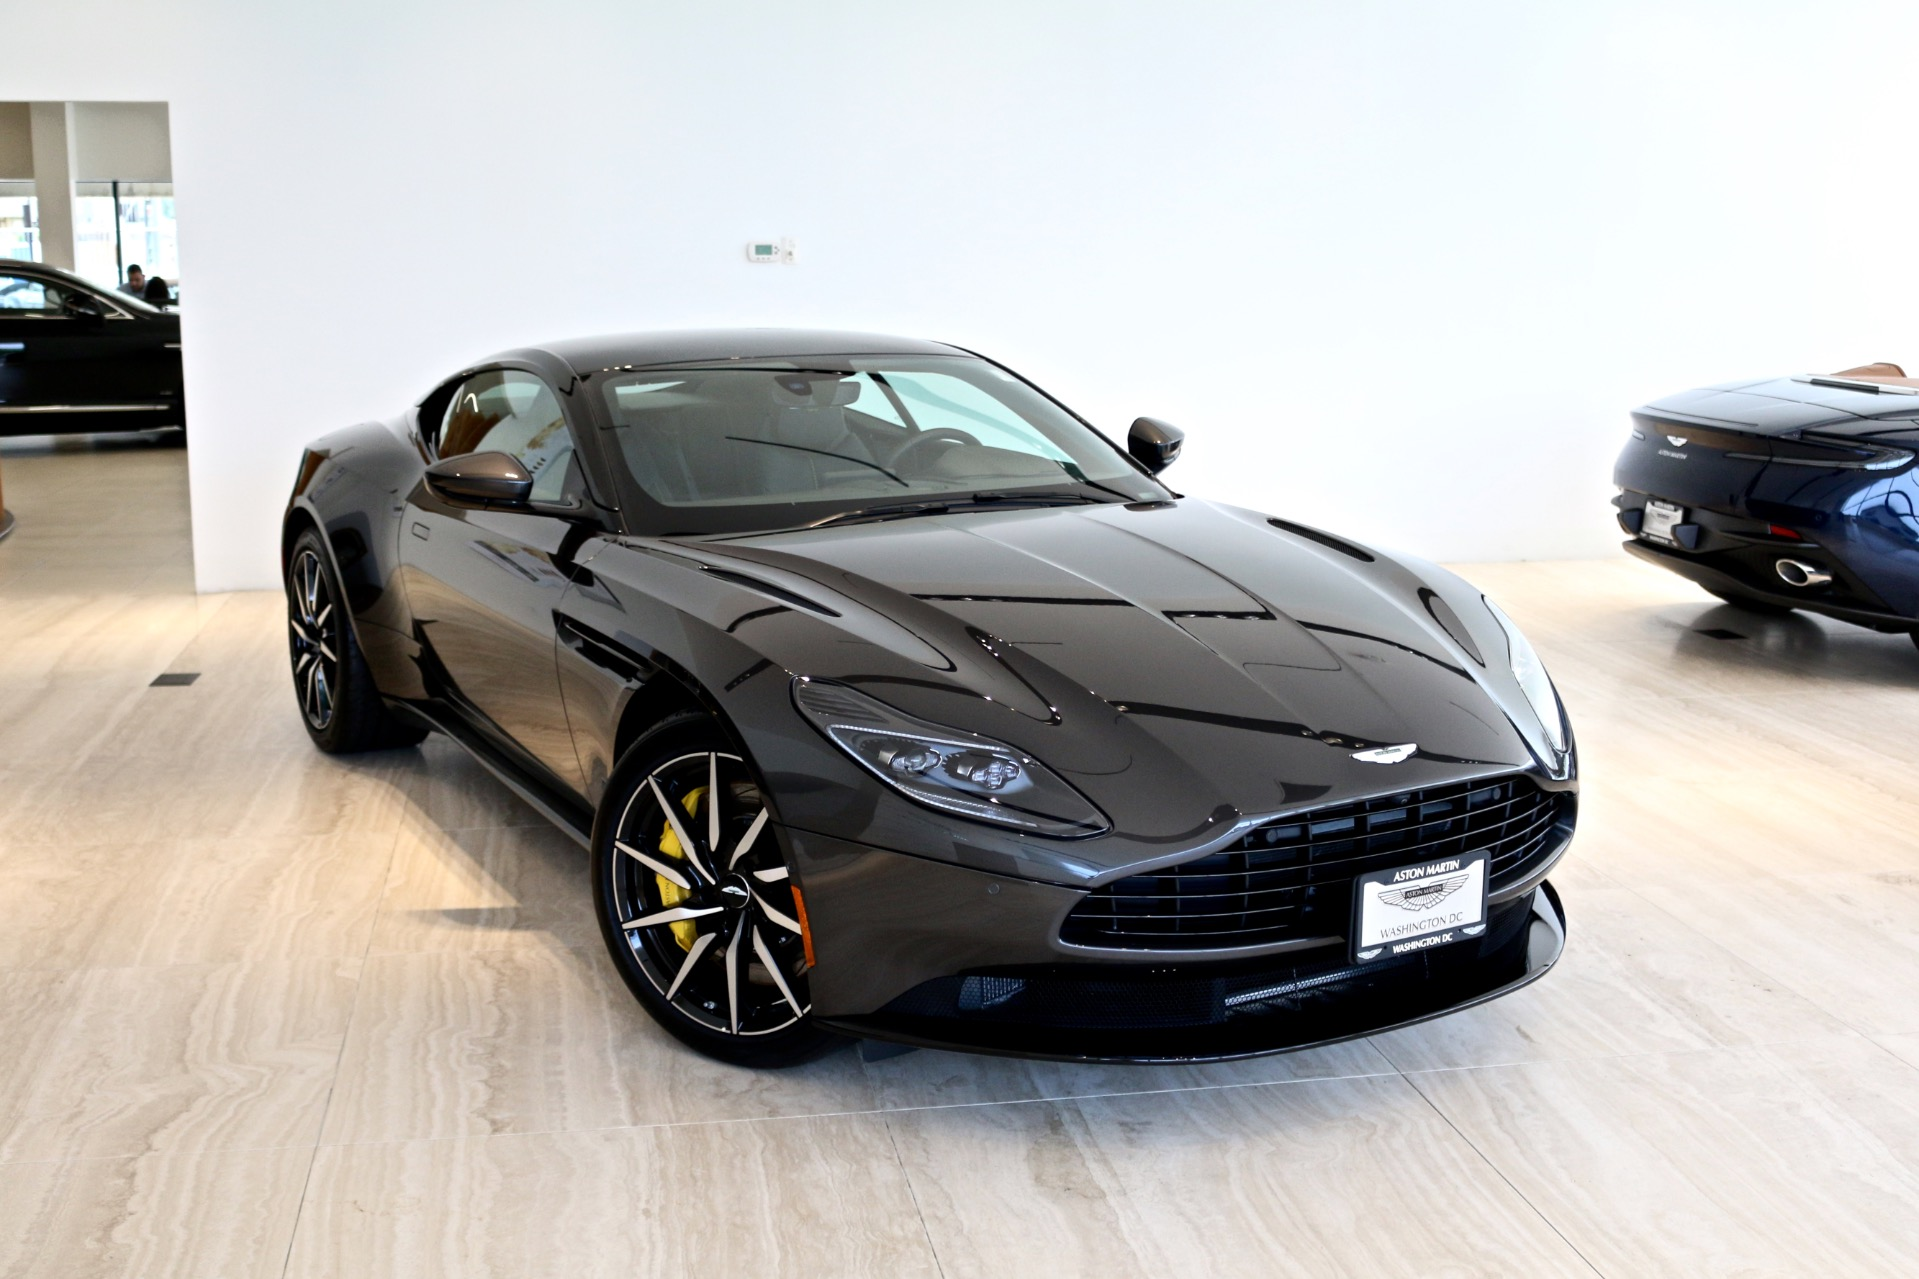 2018 Aston Martin Db11 V8 Stock 8l04039 For Sale Near Vienna Va